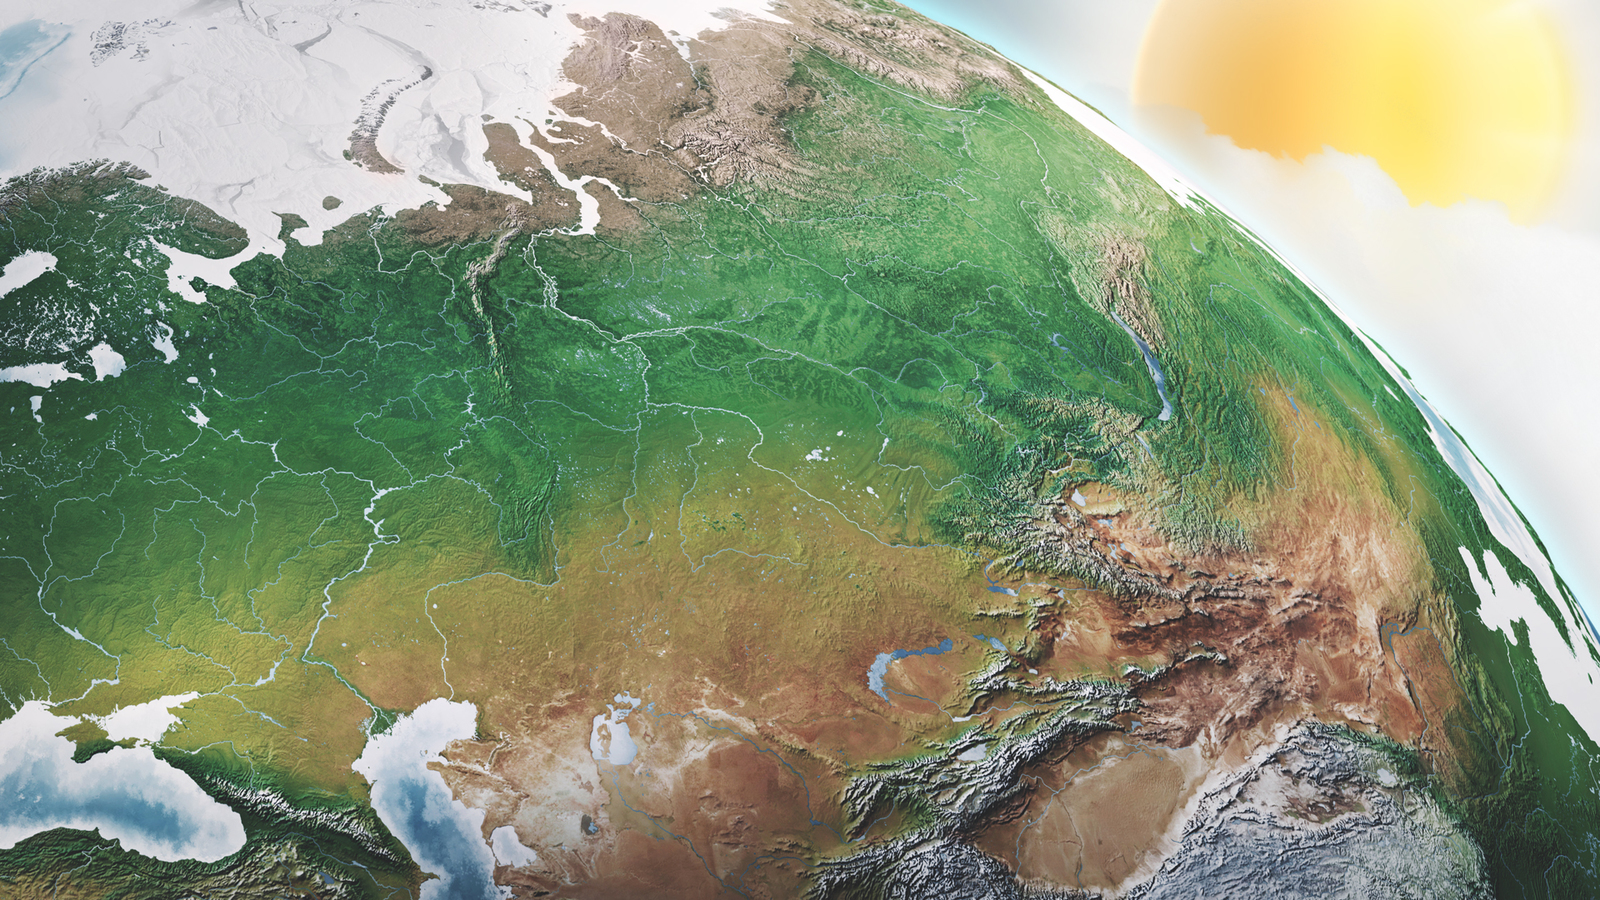 Earth Illustrations and Infographics